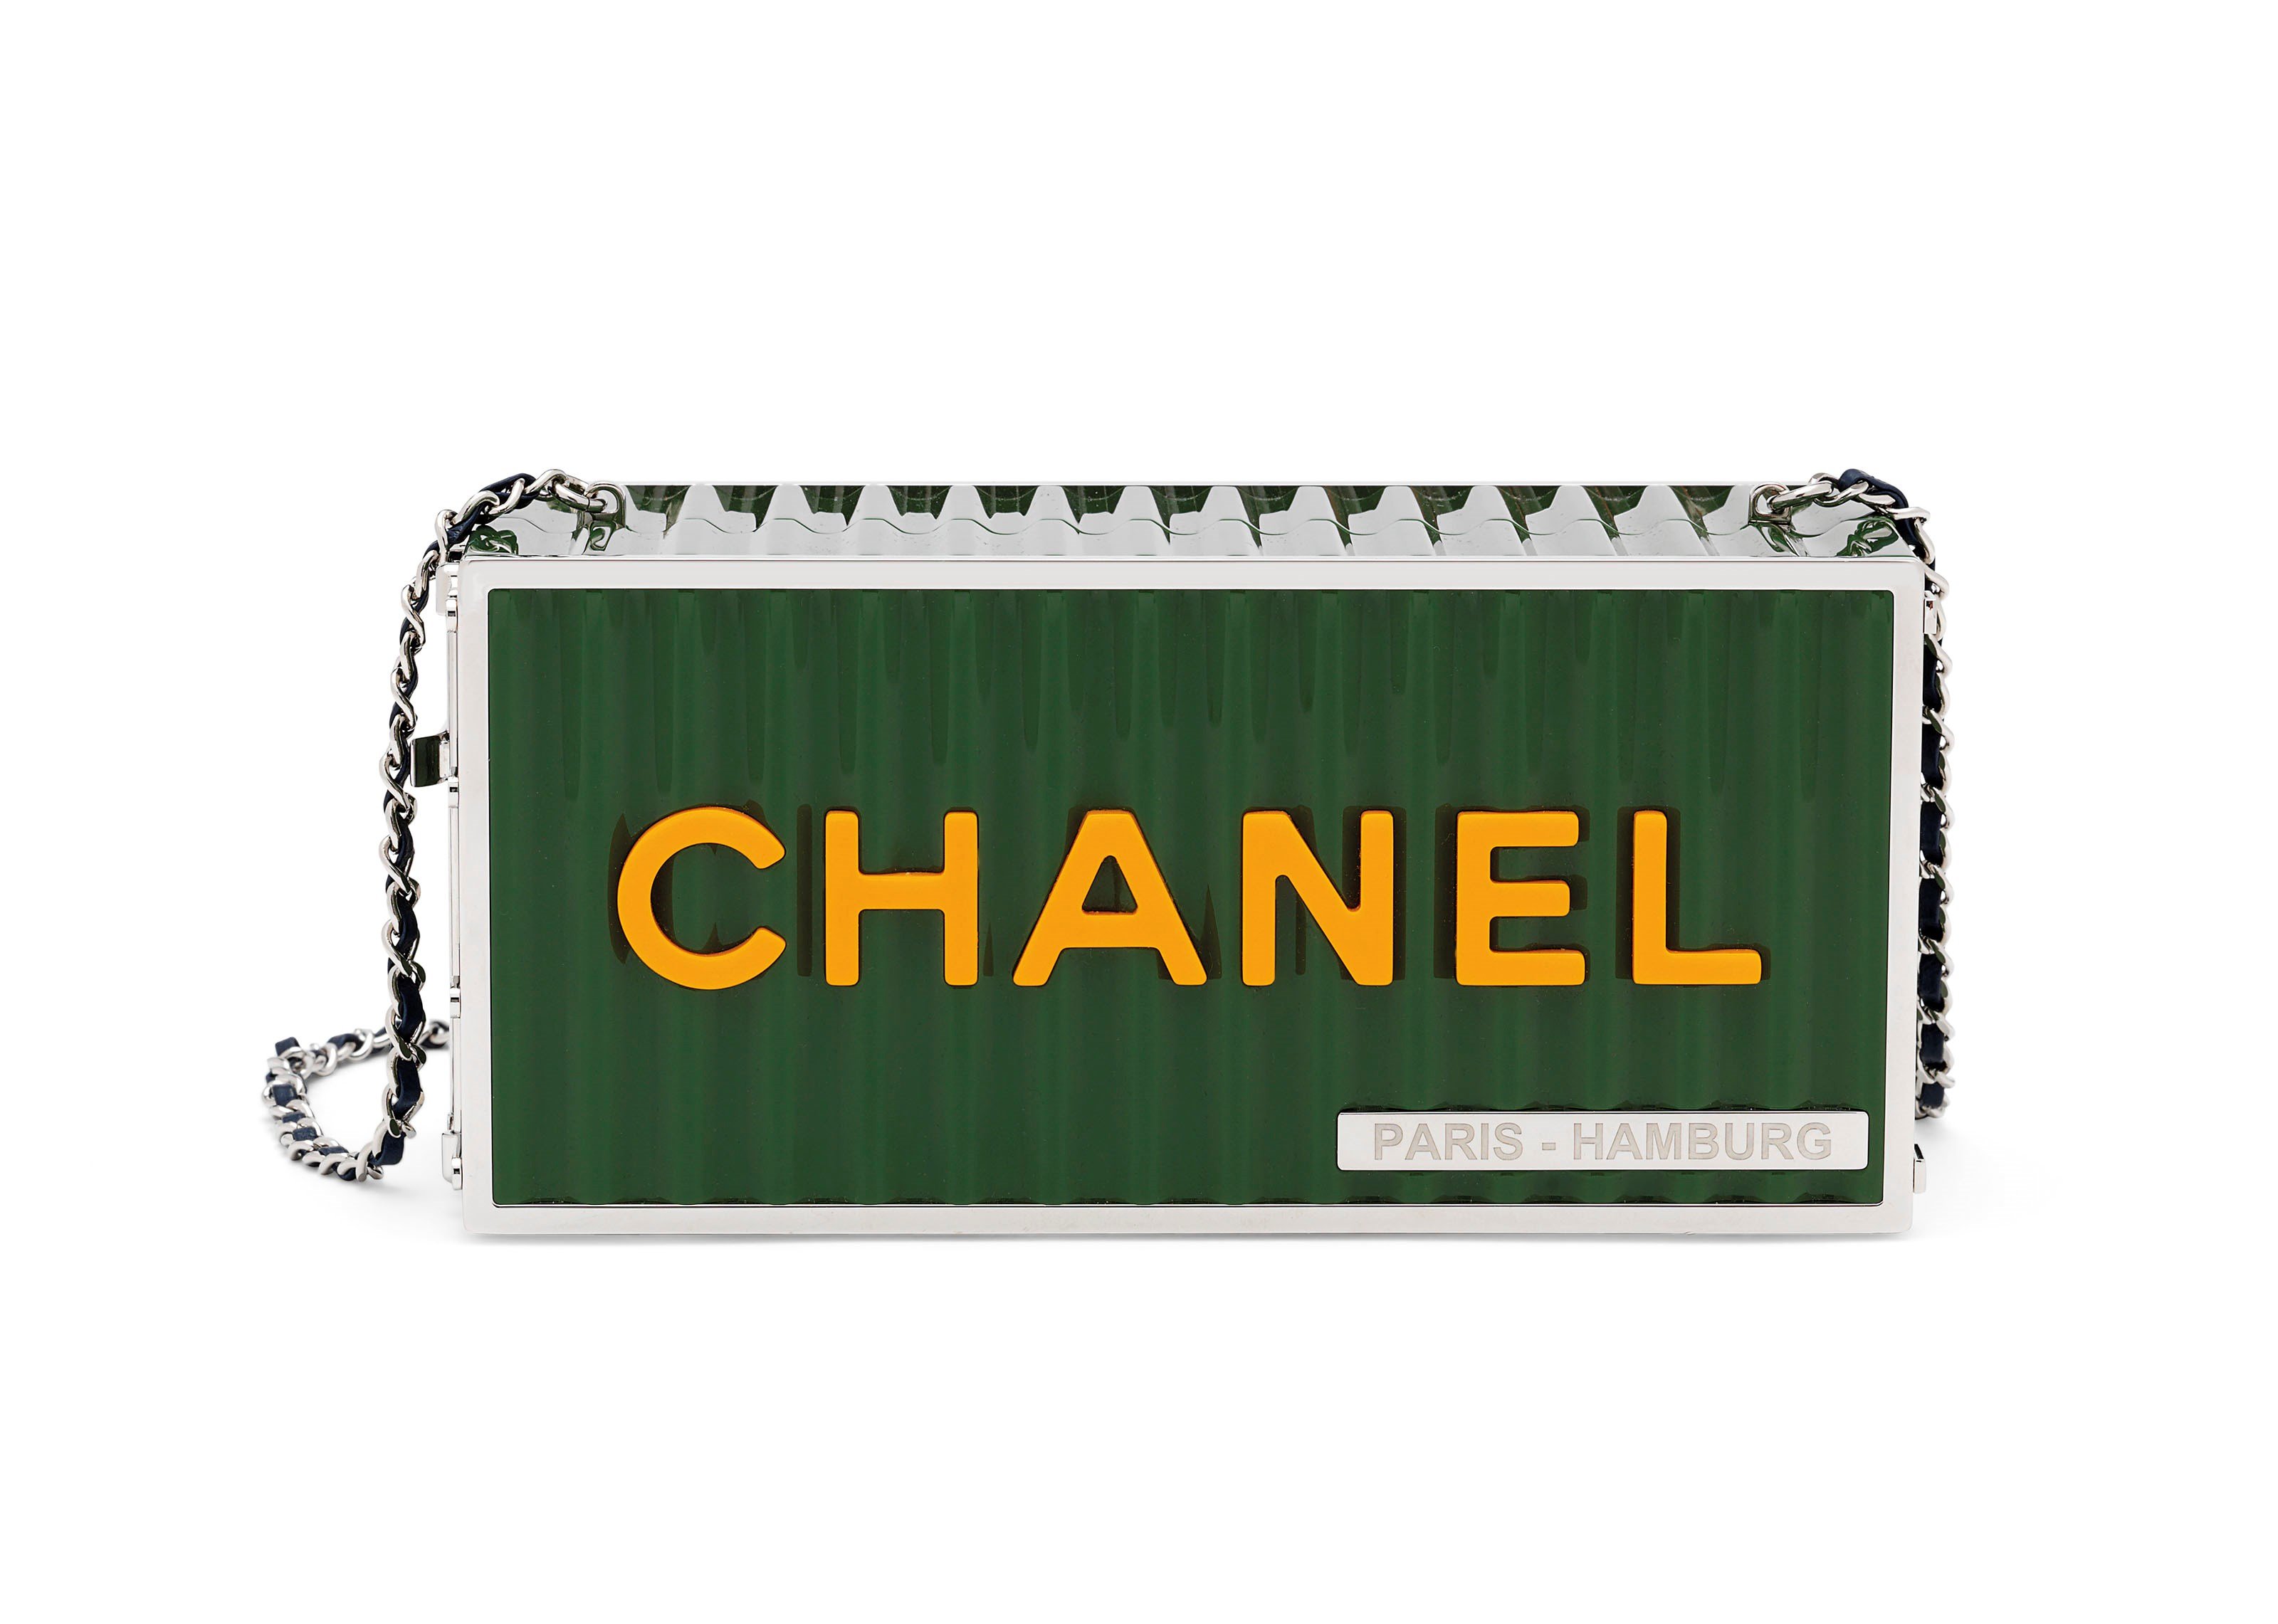 A Métiers D'Art Paris-Hamburg forest green lucite Shipping Container evening bag, Chanel, 2018. 19.5 w x 9 h x 8 d cm. Sold for £7,500 on 12 December 2018 at Christie's in London